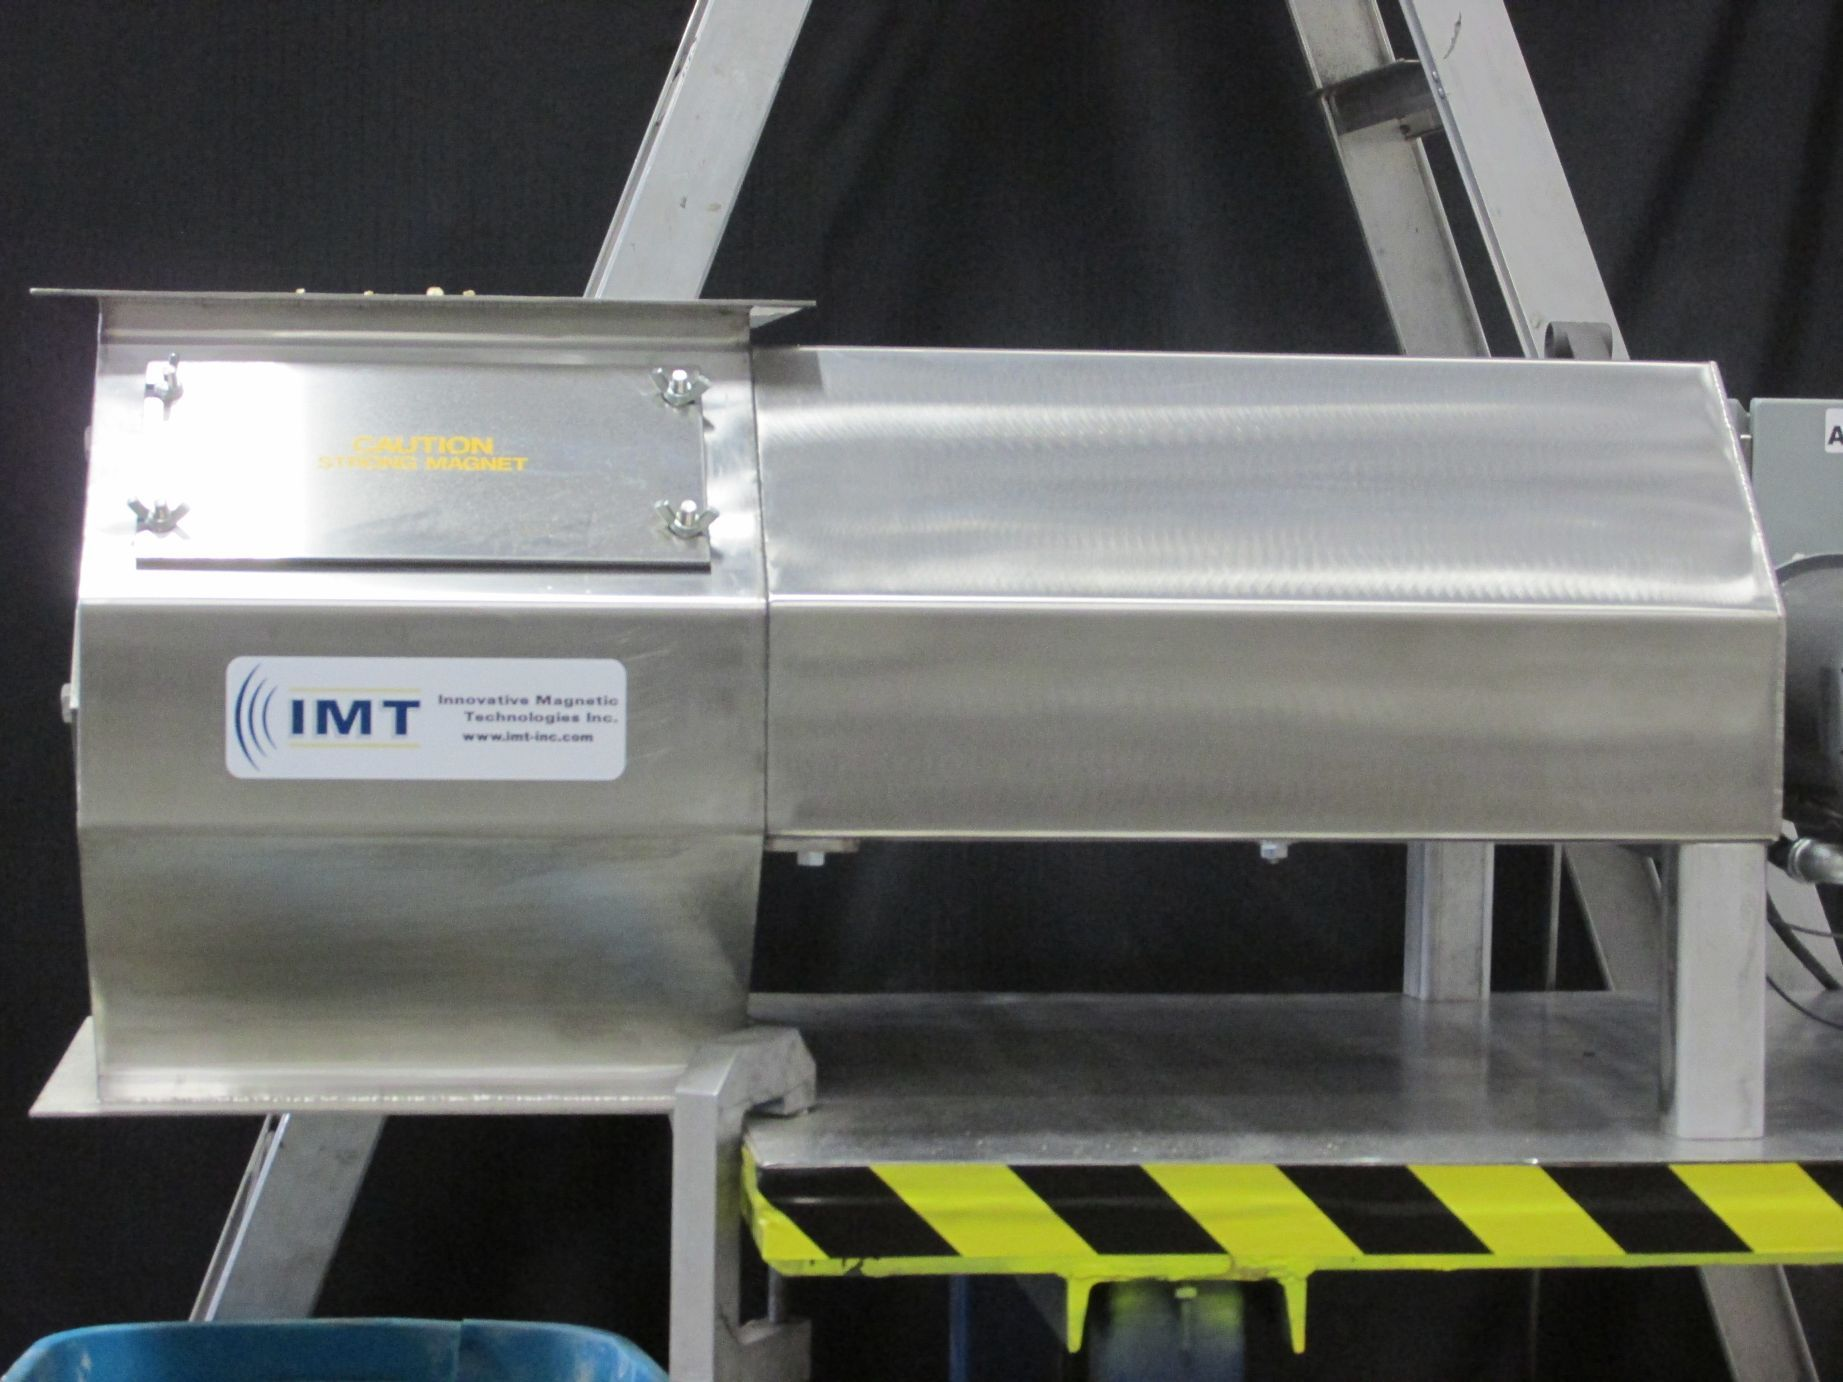 Silver looking magnet with IMT logo on the font